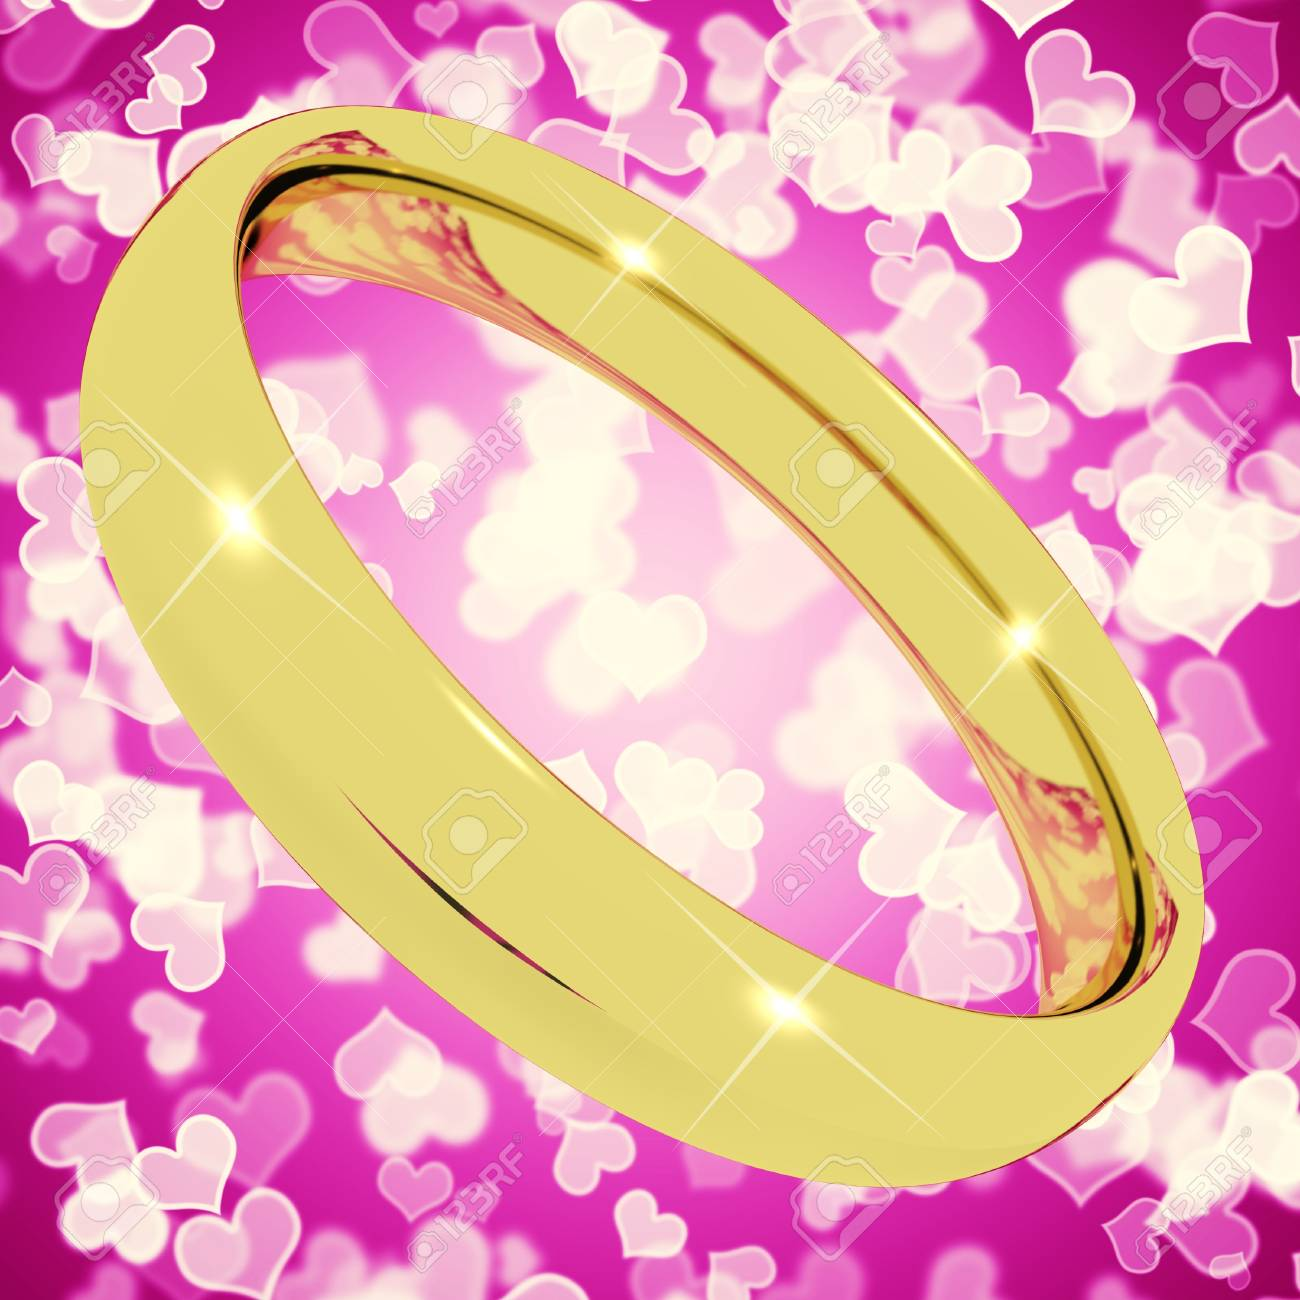 Gold Ring On Pink Heart Bokeh Background Represents Love Valentine ...